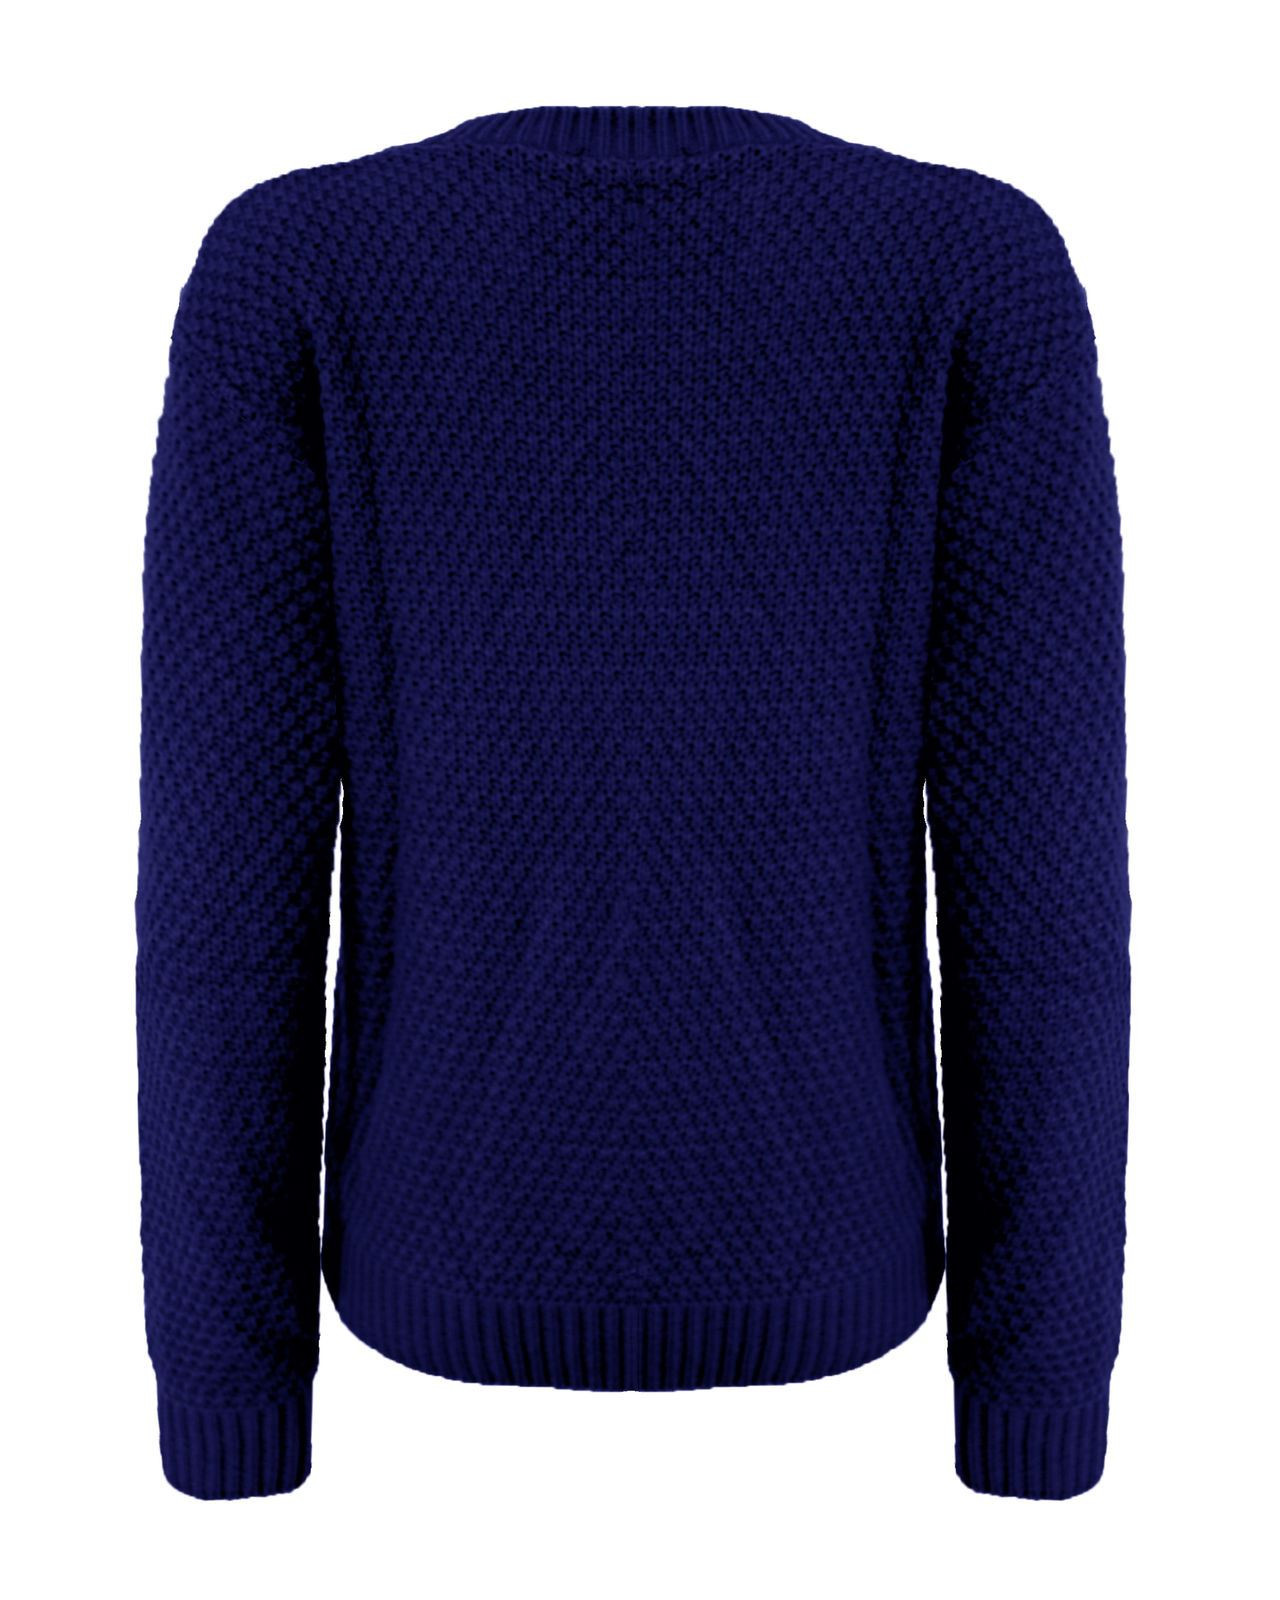 La s Women Knitted Crew Neck Long Sleeve Cable Knit